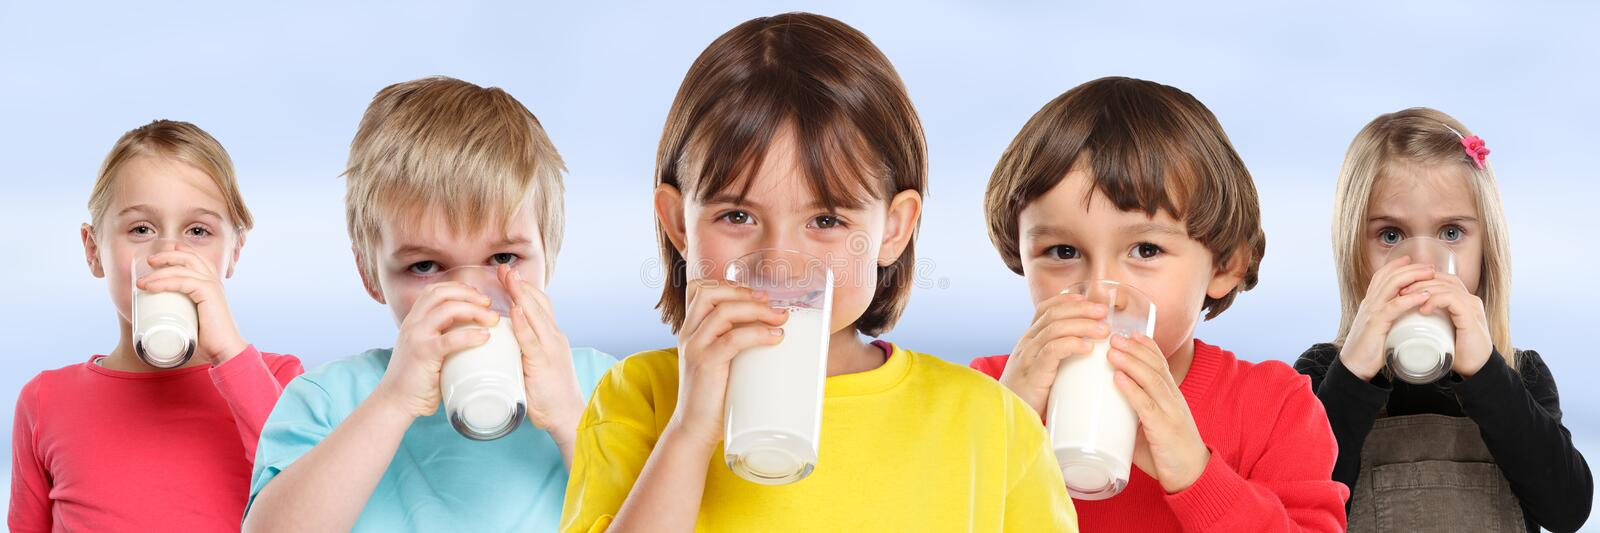 Group of children girl boy drinking milk kids glass healthy eating banner. Young stock images